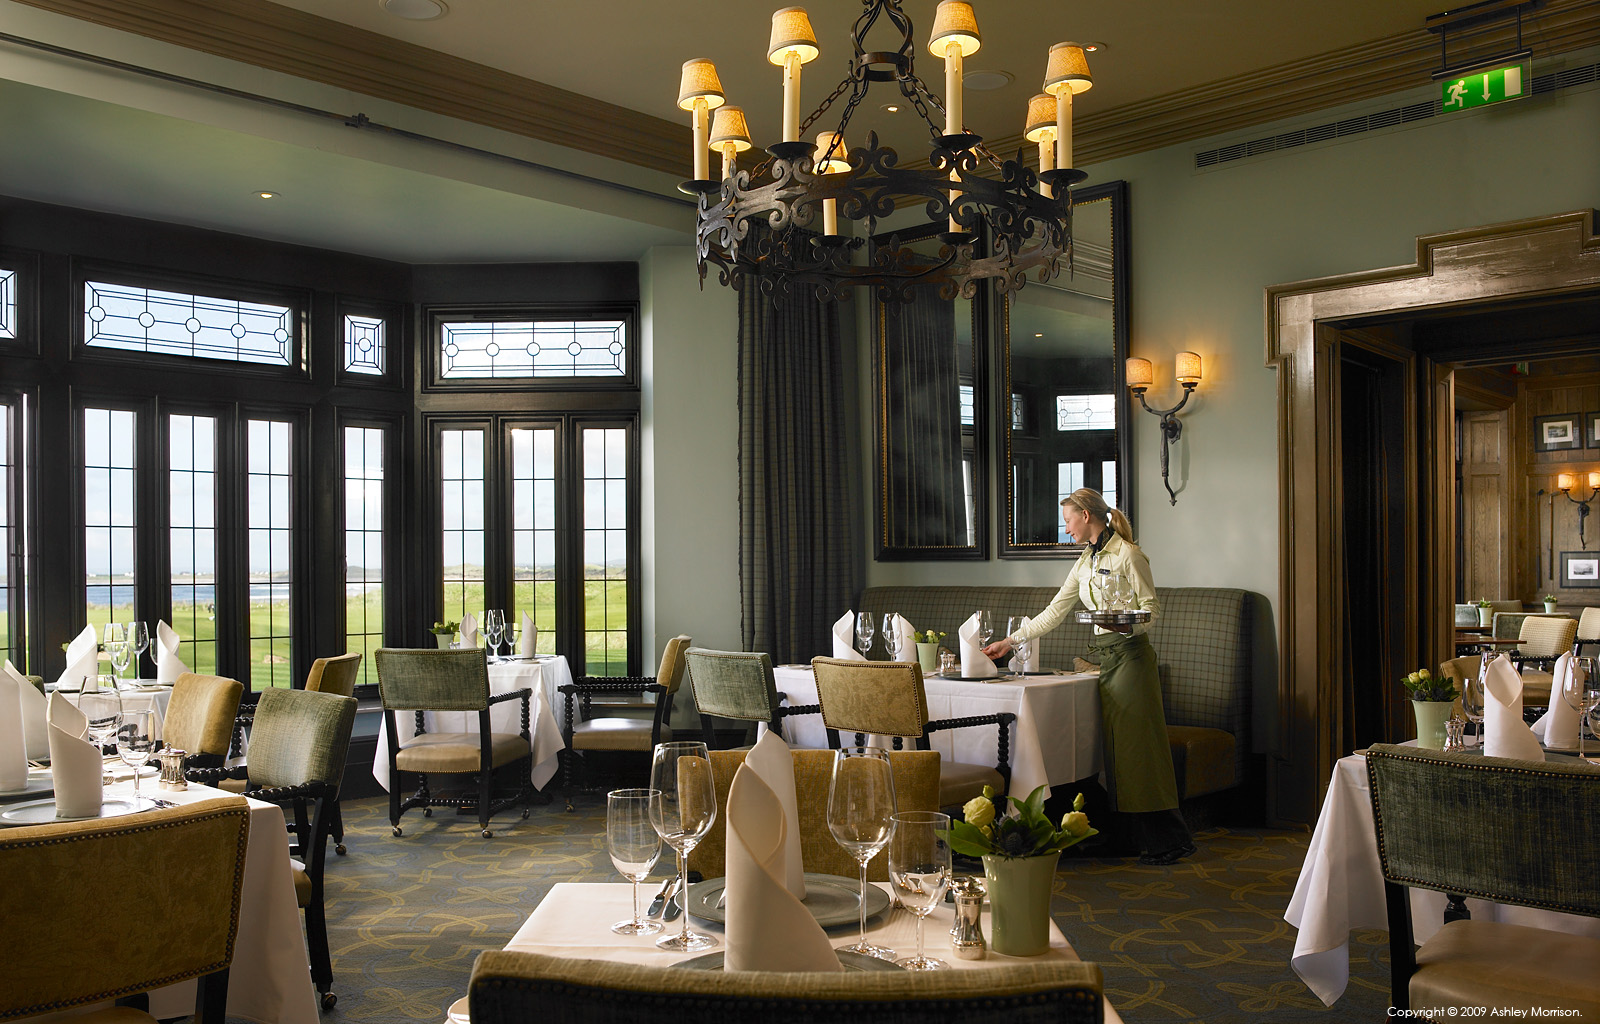 Ocean View Restaurant in the Lodge at the Trump International Golf Links & Hotel in County Clare.